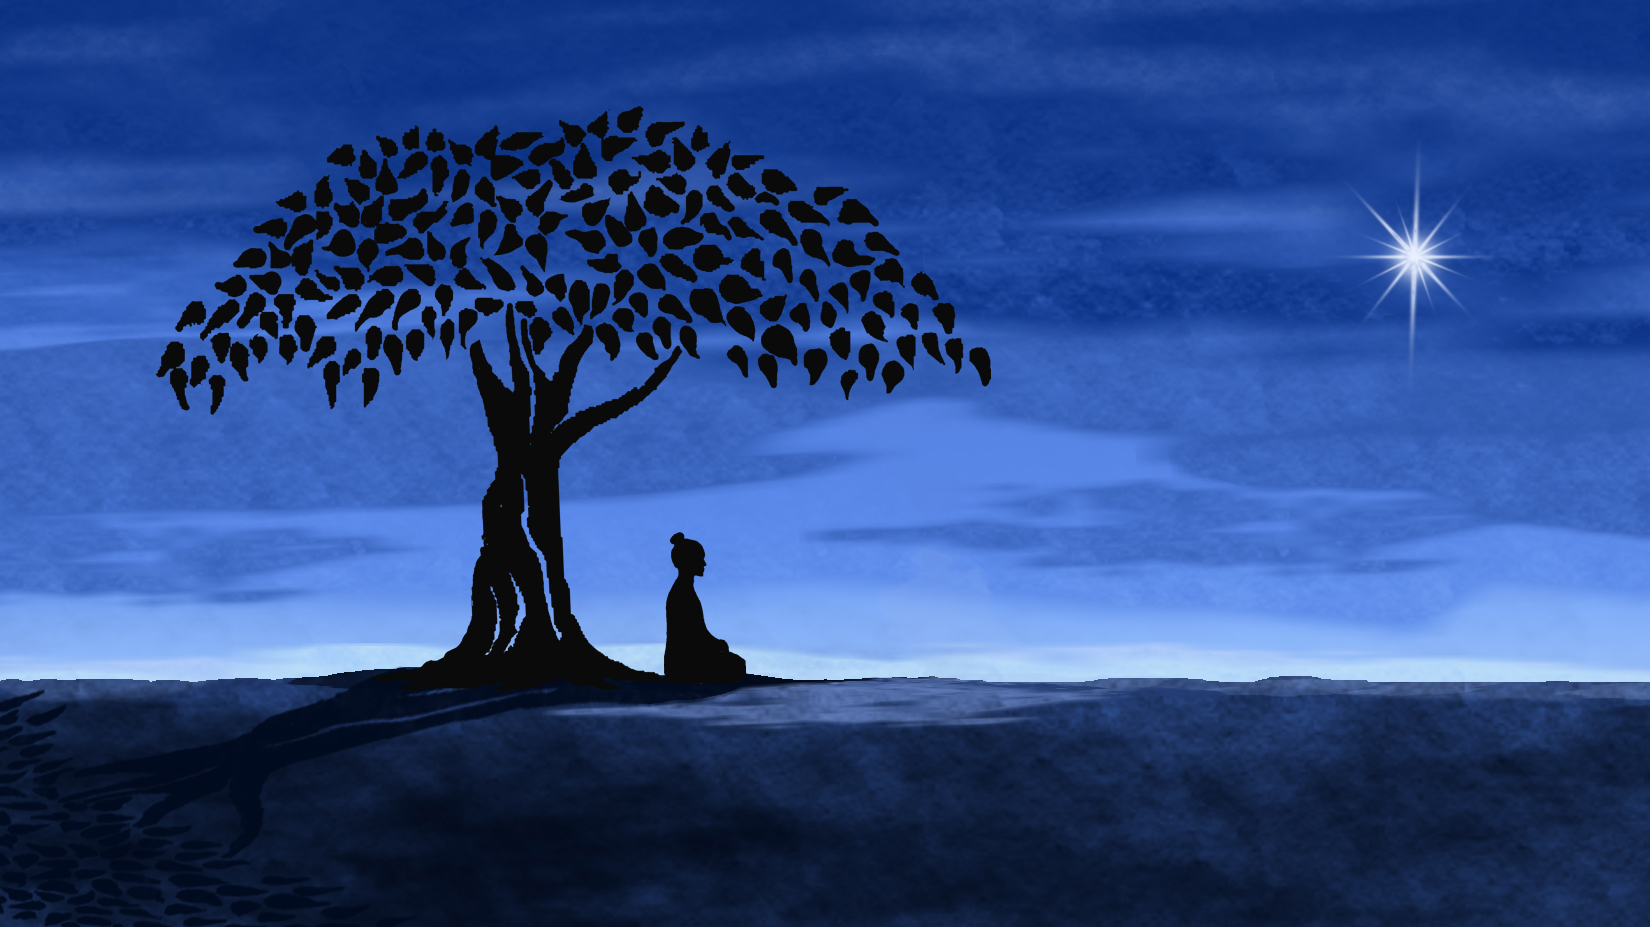 THE BUDDHA - The Buddha combines animation and traditional documentary storytelling. This animation image from the film depicts the Buddha gaining enlightenment while meditating under a fig tree.